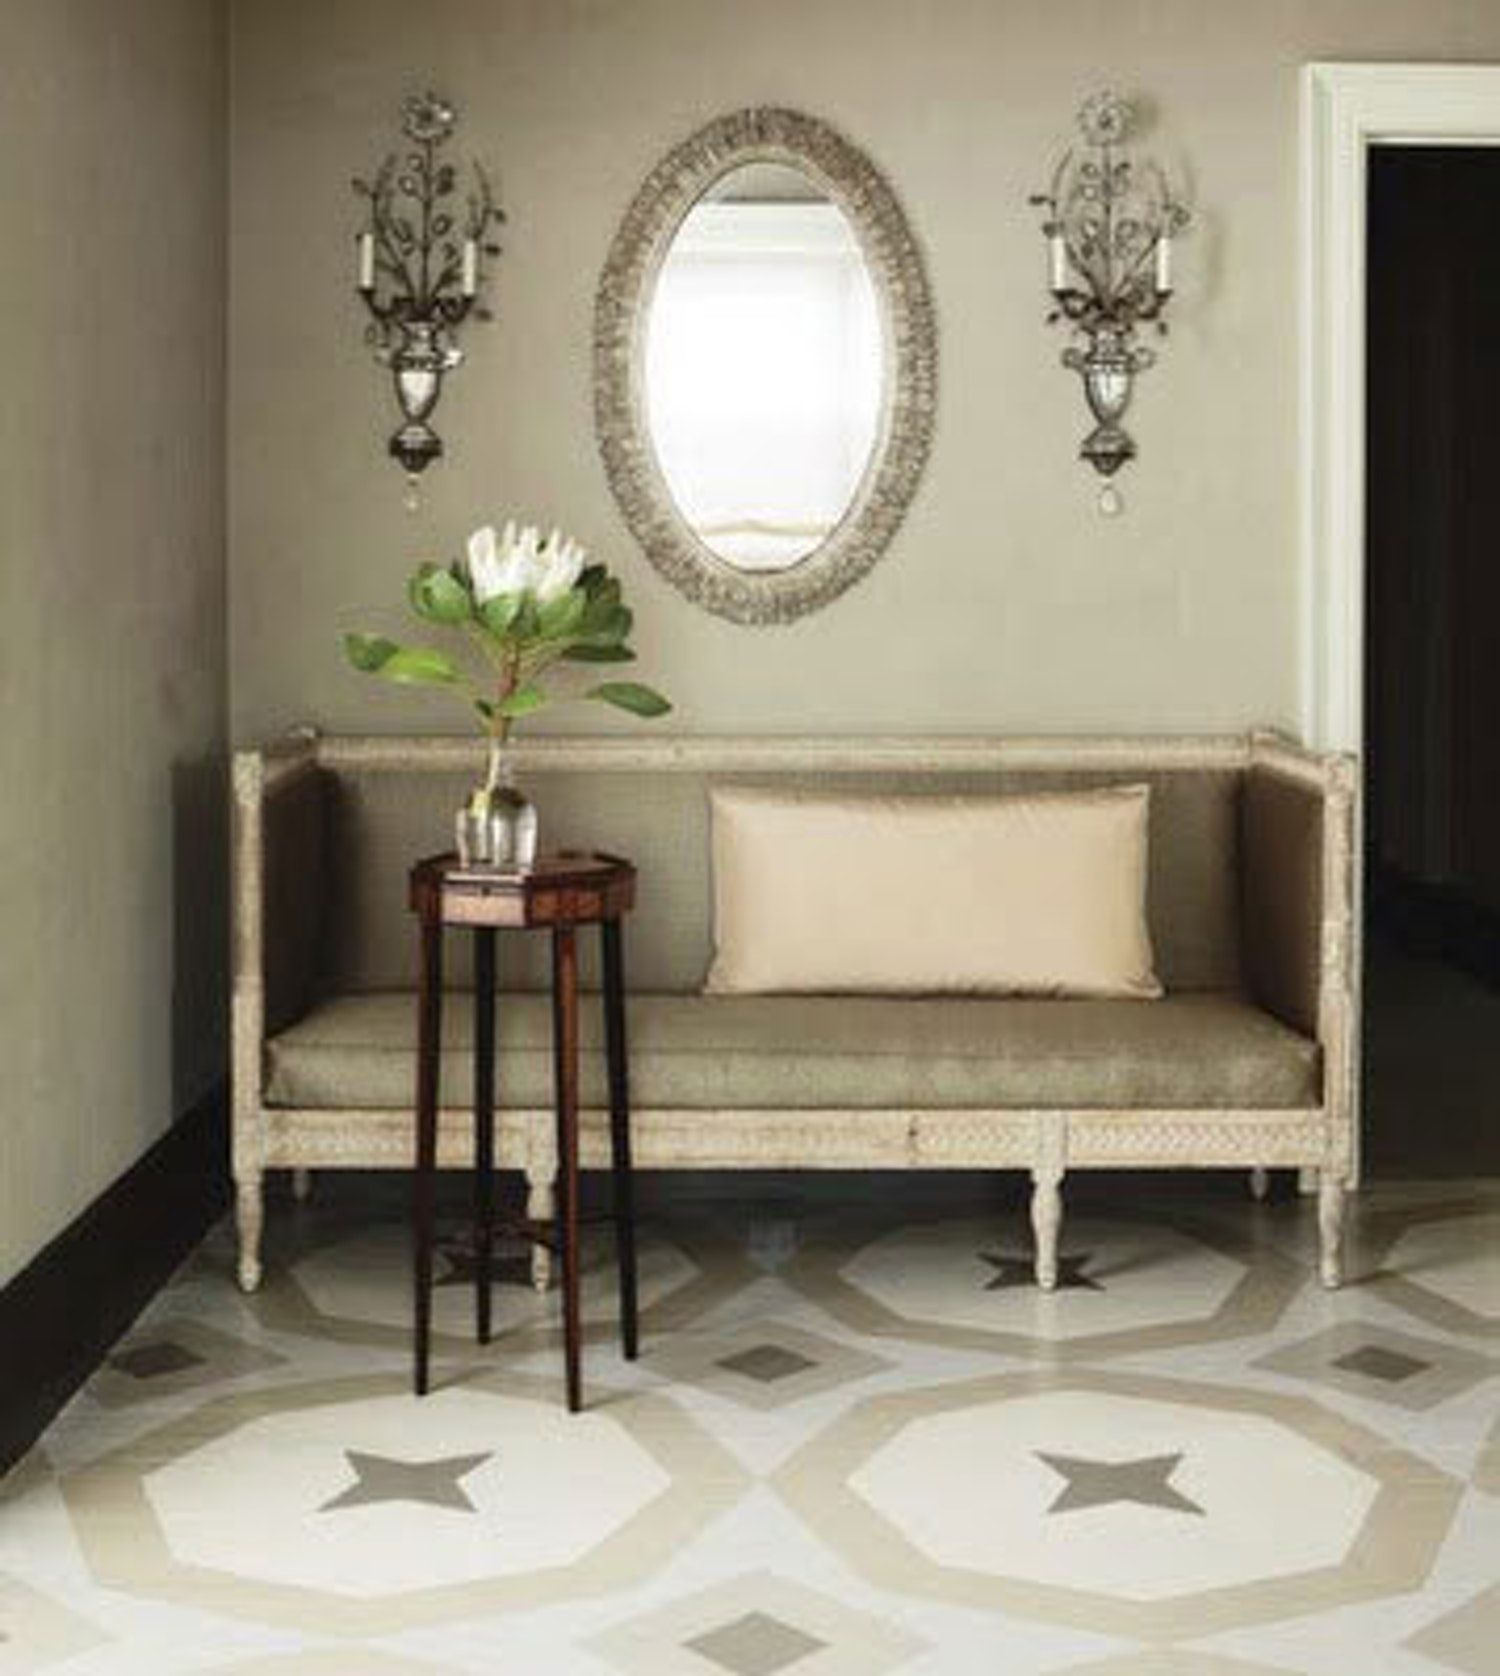 Painted Floors Designs